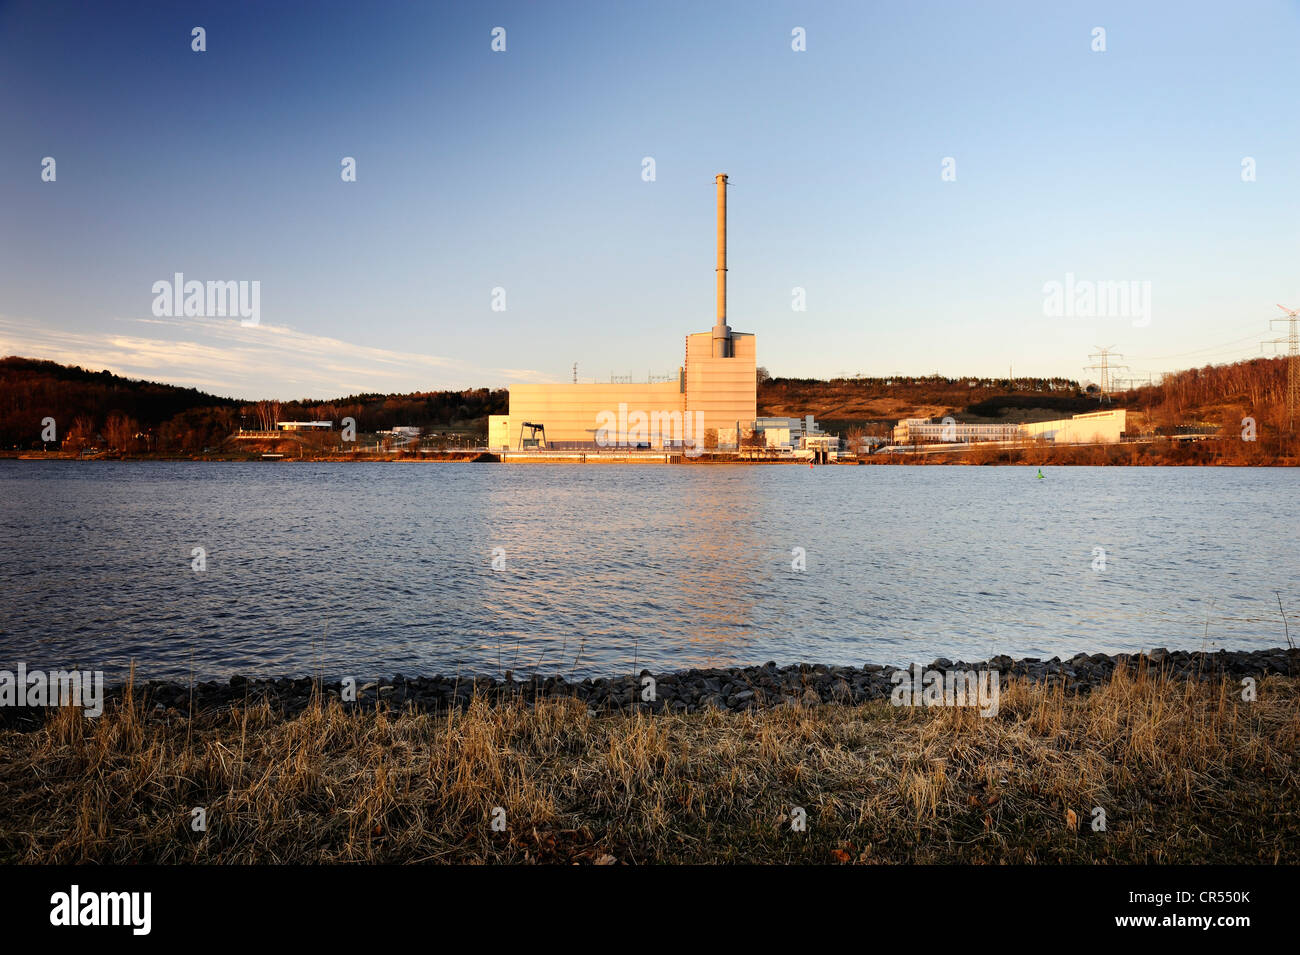 Kruemmel Nuclear Power Plant in Geesthacht, Schleswig-Holstein, Germany, Europe - Stock Image